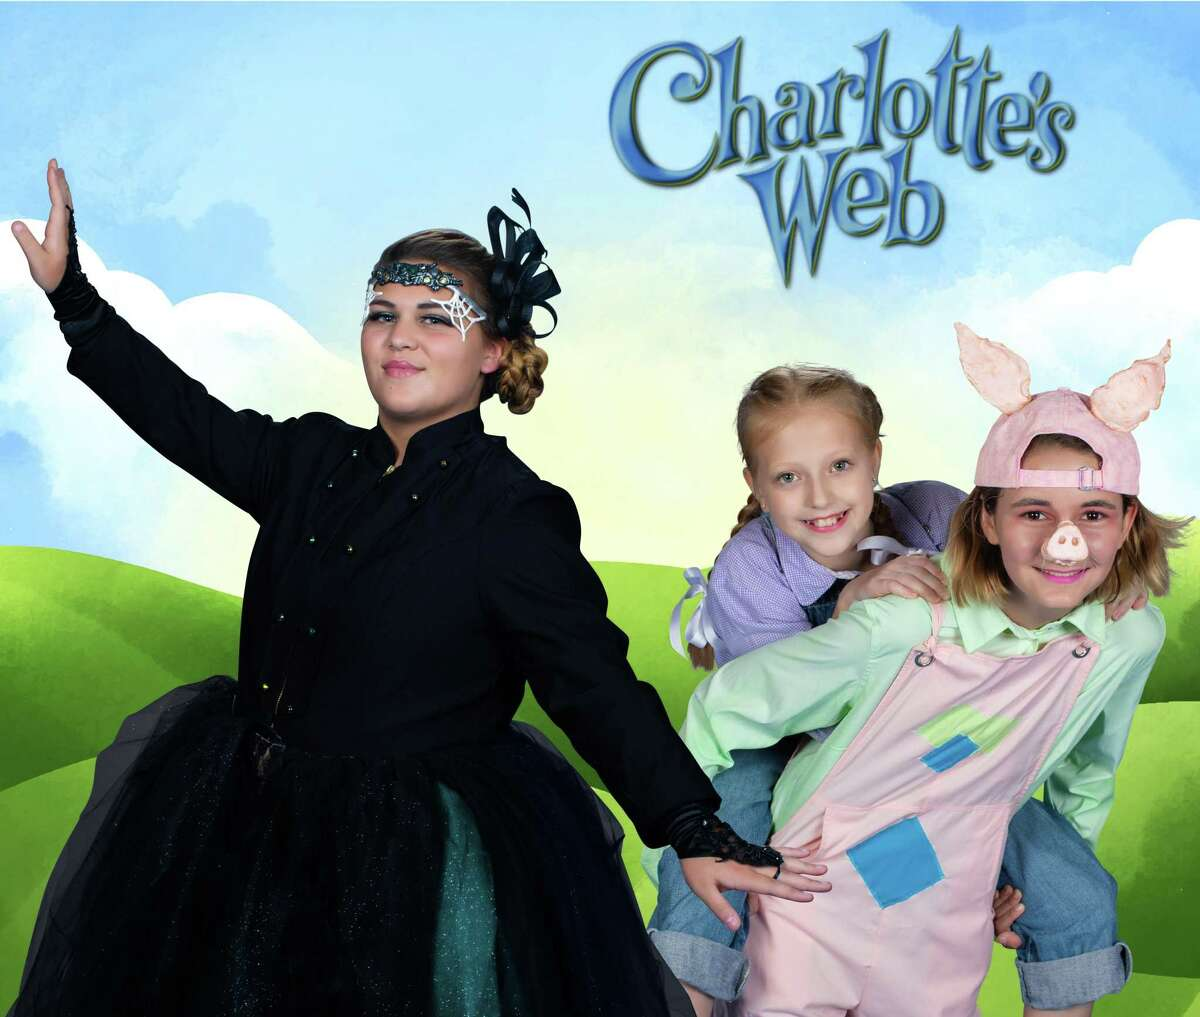 """From left, Rebekah Shirley plays Charlotte, Elise Driver plays Fern and Evann Sommers is Wilbur in Christian Youth Theatre's """"Charlotte's Web."""" The show is at the Crighton Theatre Nov. 8-10."""